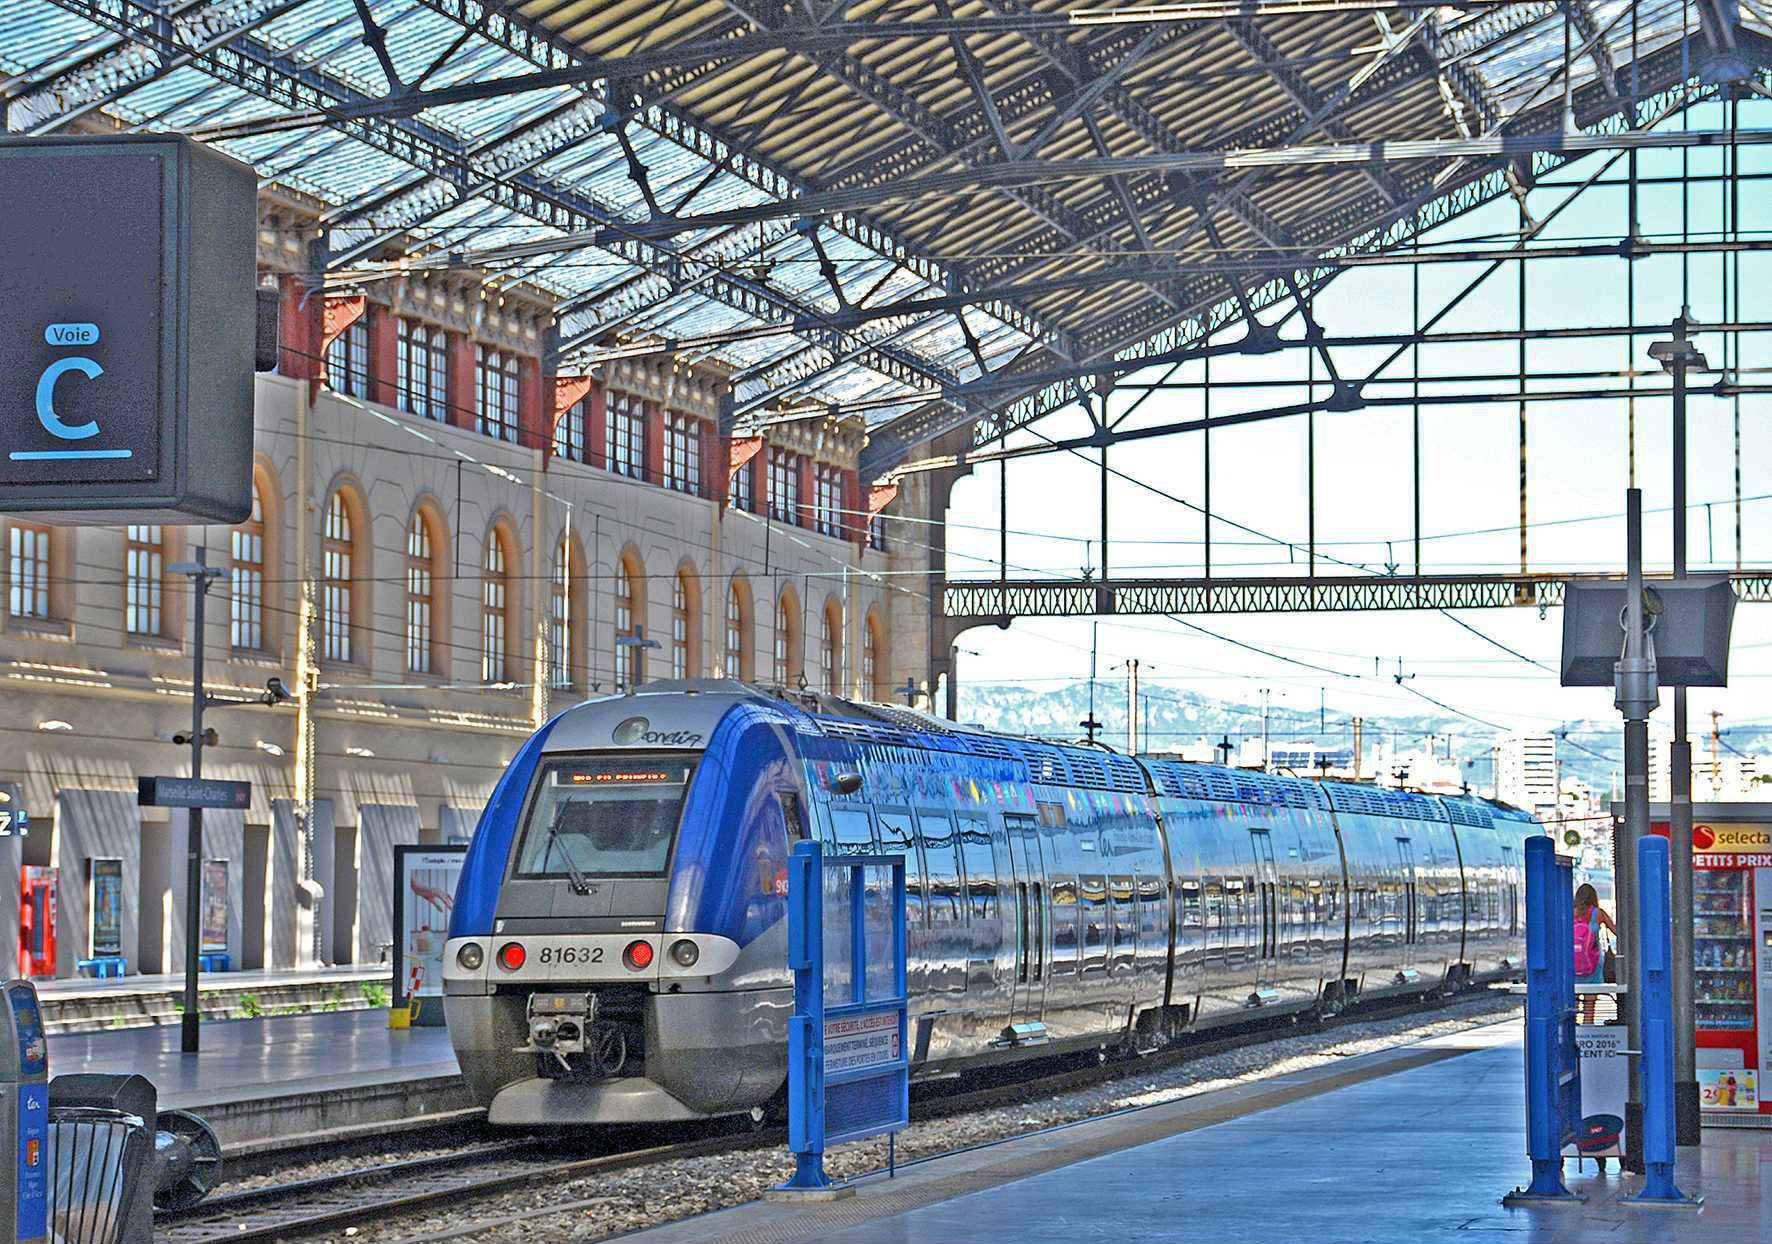 TER Train Station Saint-Charles in Marseille (illustration).